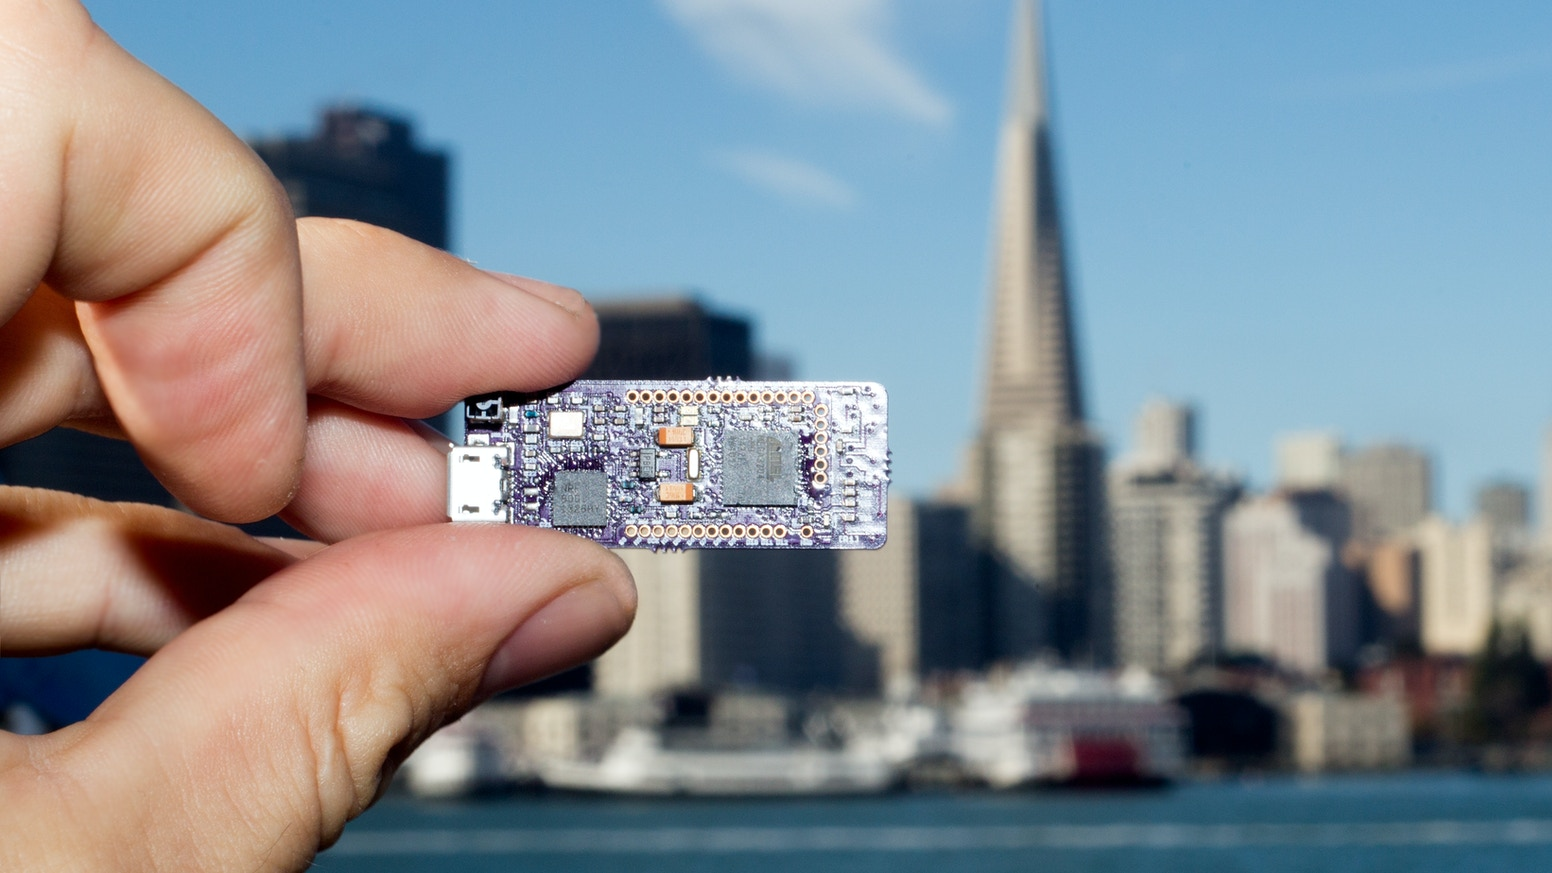 The world's FIRST 3D Beacon! The only board that does Wireless 3D. Build apps with HTML5 and Bluetooth Low Energy!